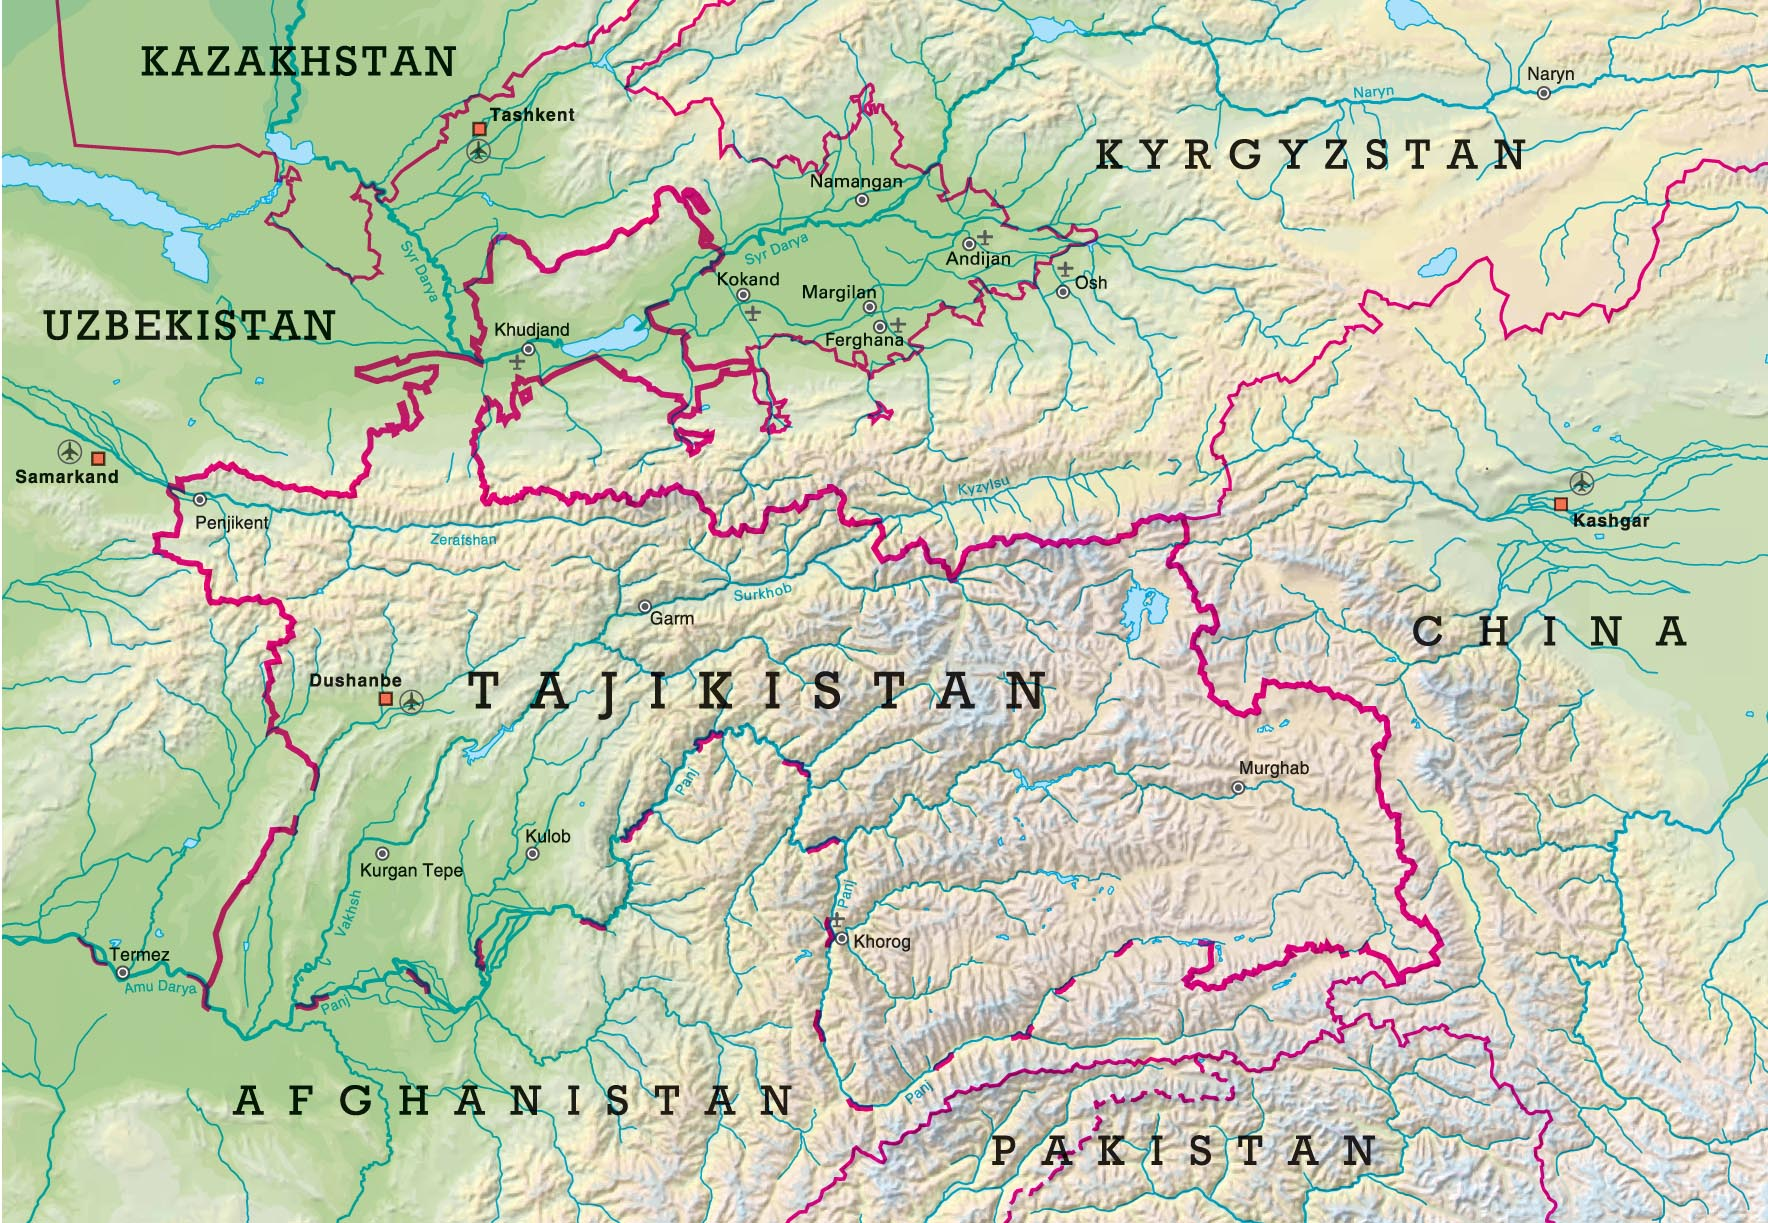 http://upload.wikimedia.org/wikipedia/commons/a/a2/Tajikistan_OVER.jpg